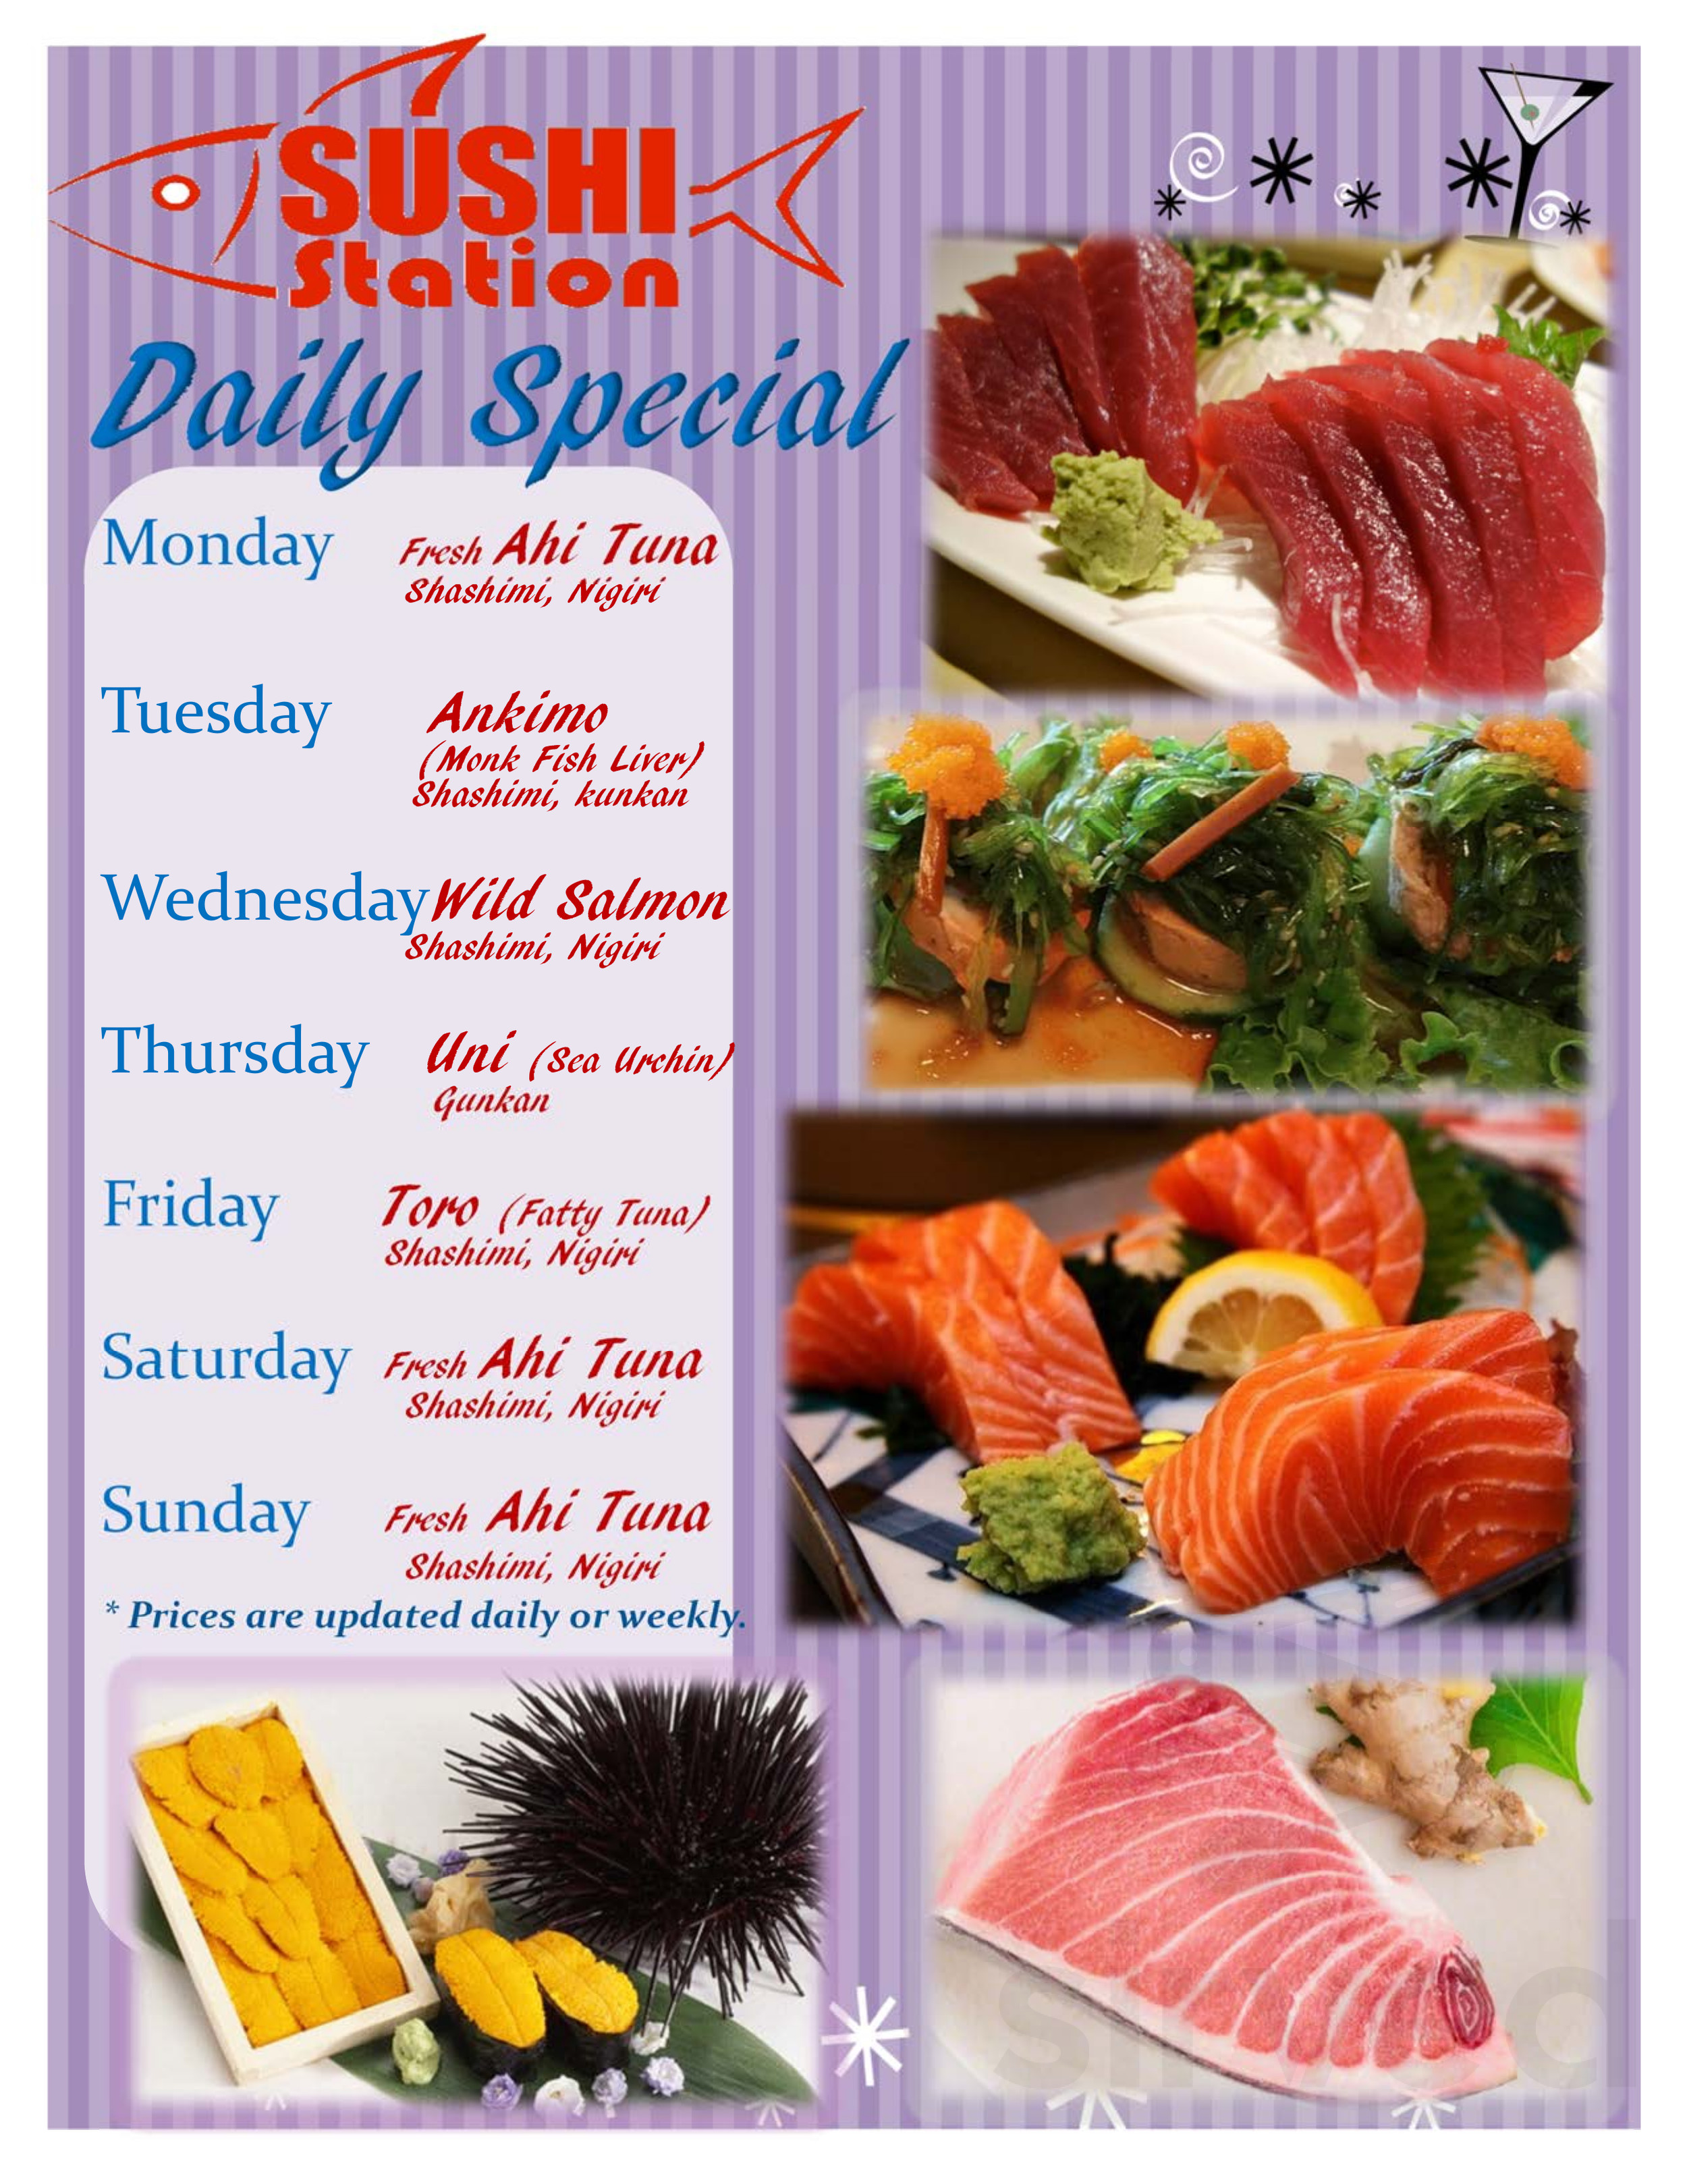 Sushi Station Japanese Restaurant Menu In Eugene Oregon Try smoked salmon instead of imitation if you do not have a bamboo sushi mat, the easiest way to roll the sushi is to use a clean dish towel. sushi station japanese restaurant menu